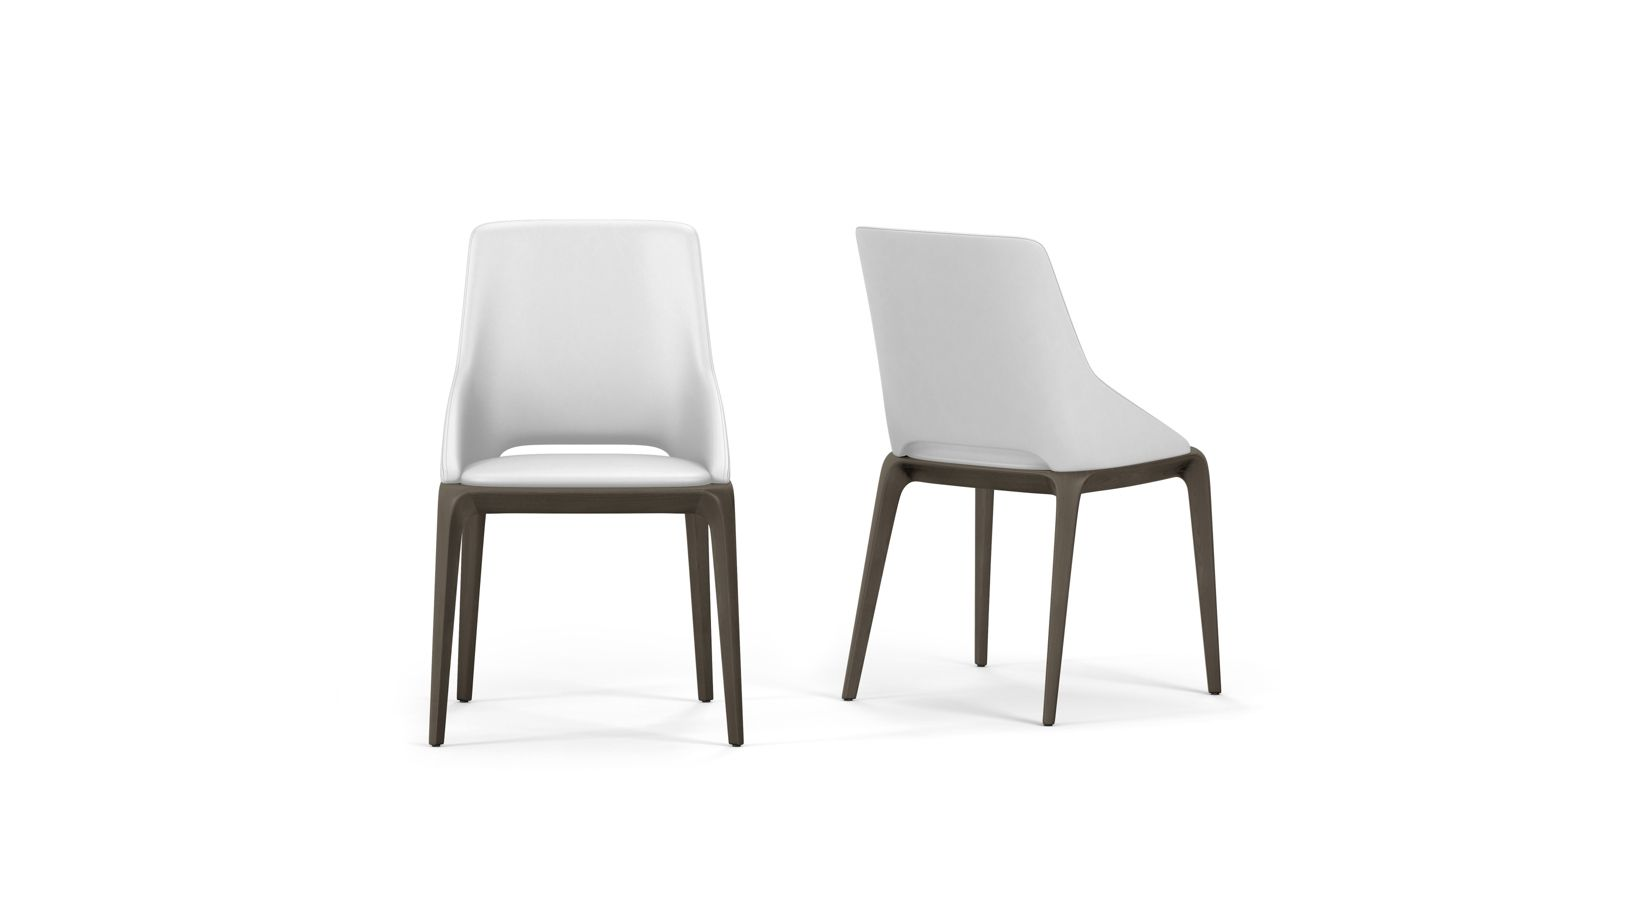 brio chair roche bobois. Black Bedroom Furniture Sets. Home Design Ideas